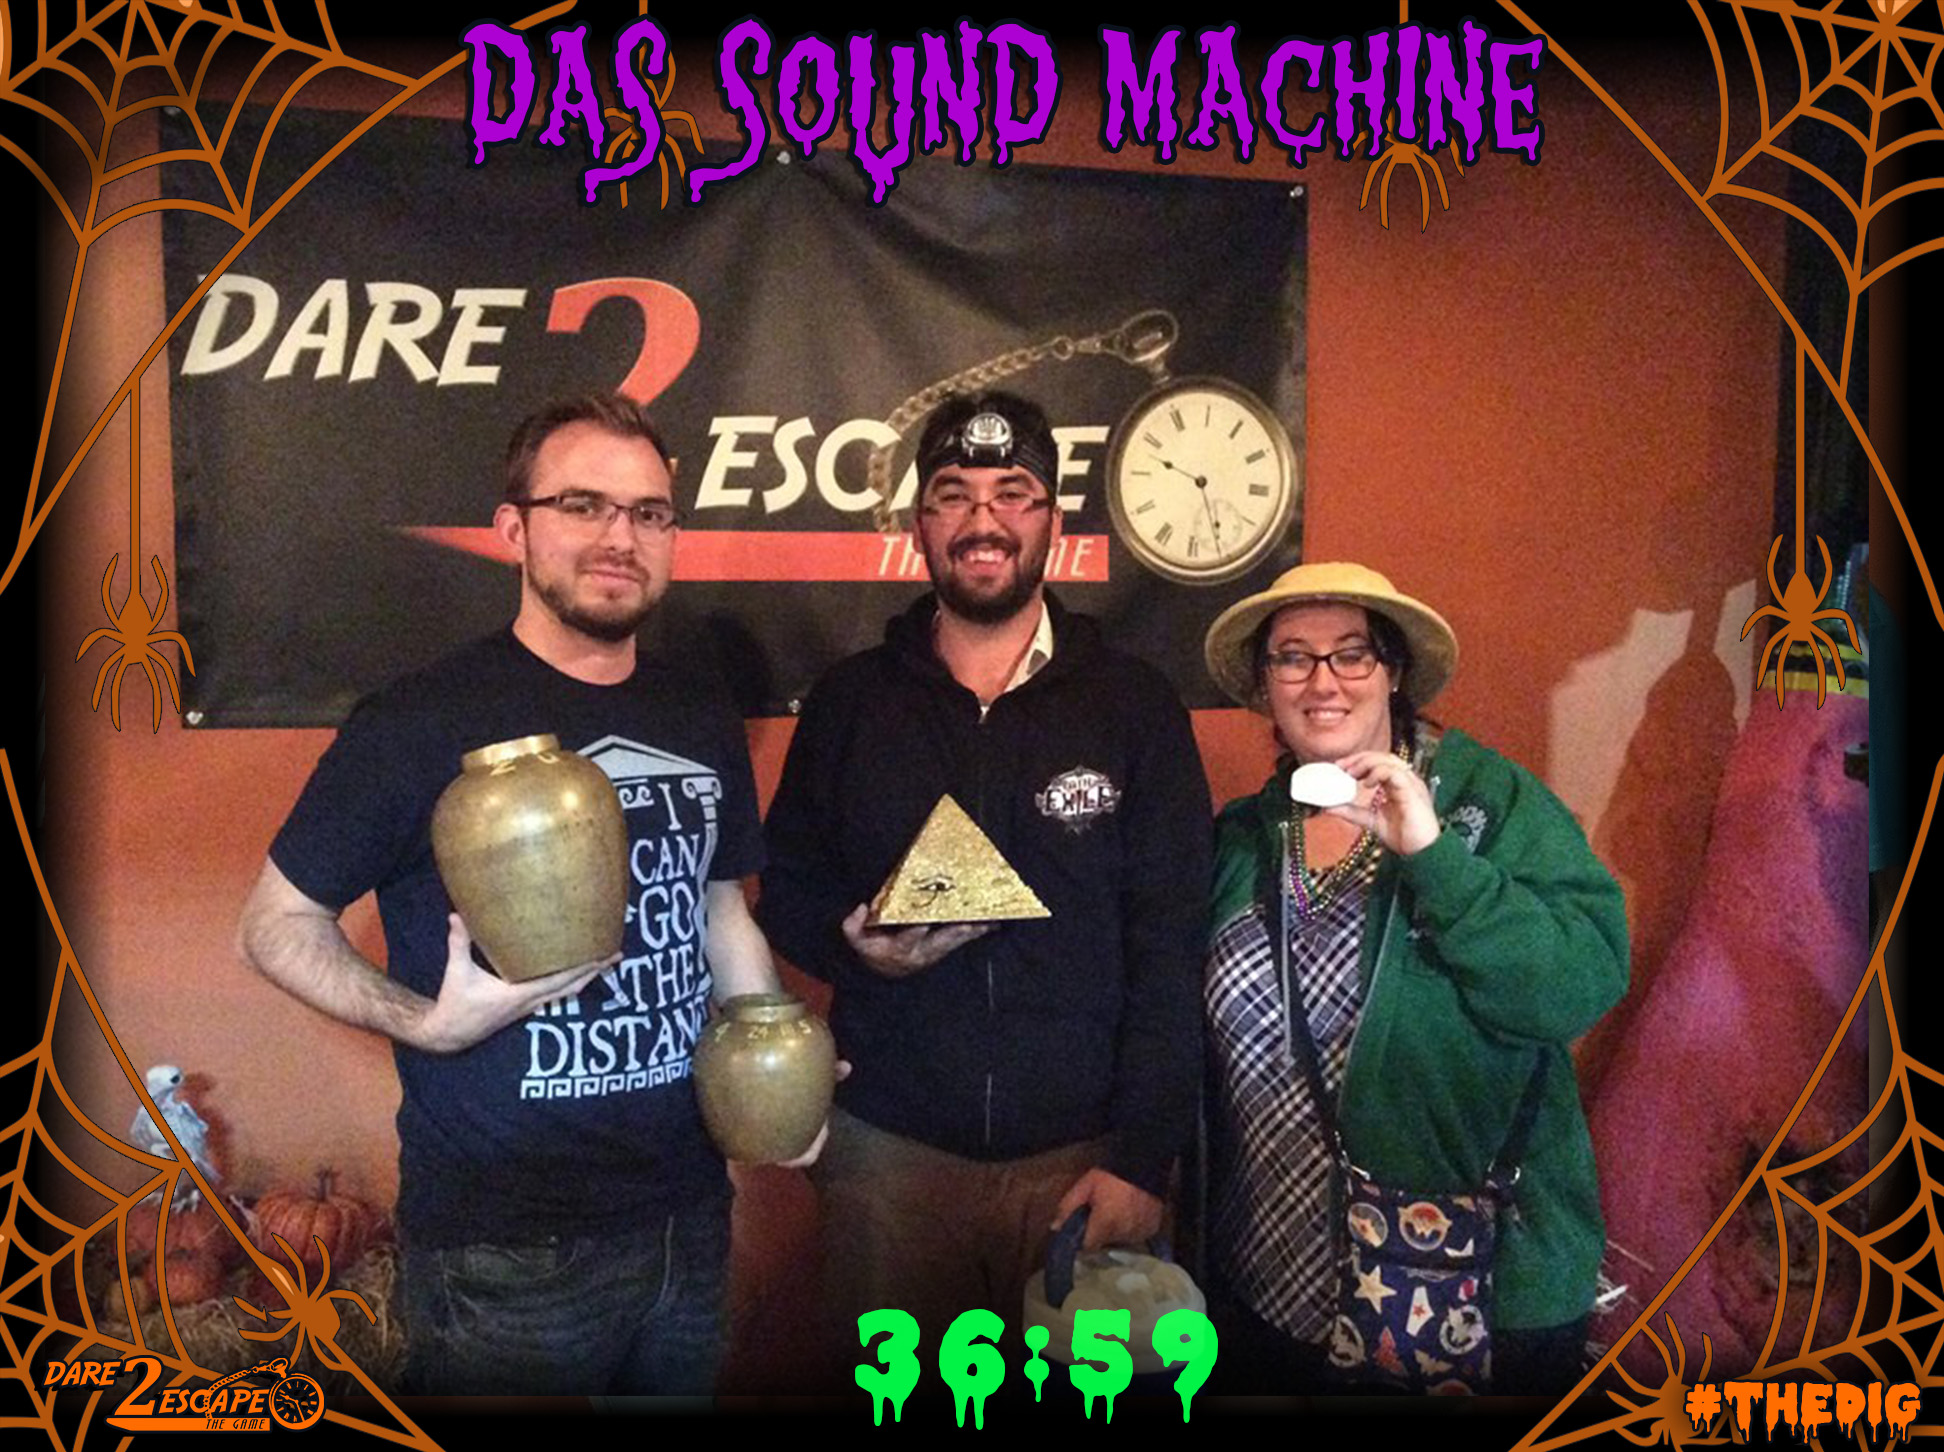 Das Sound Machine 3659.jpg